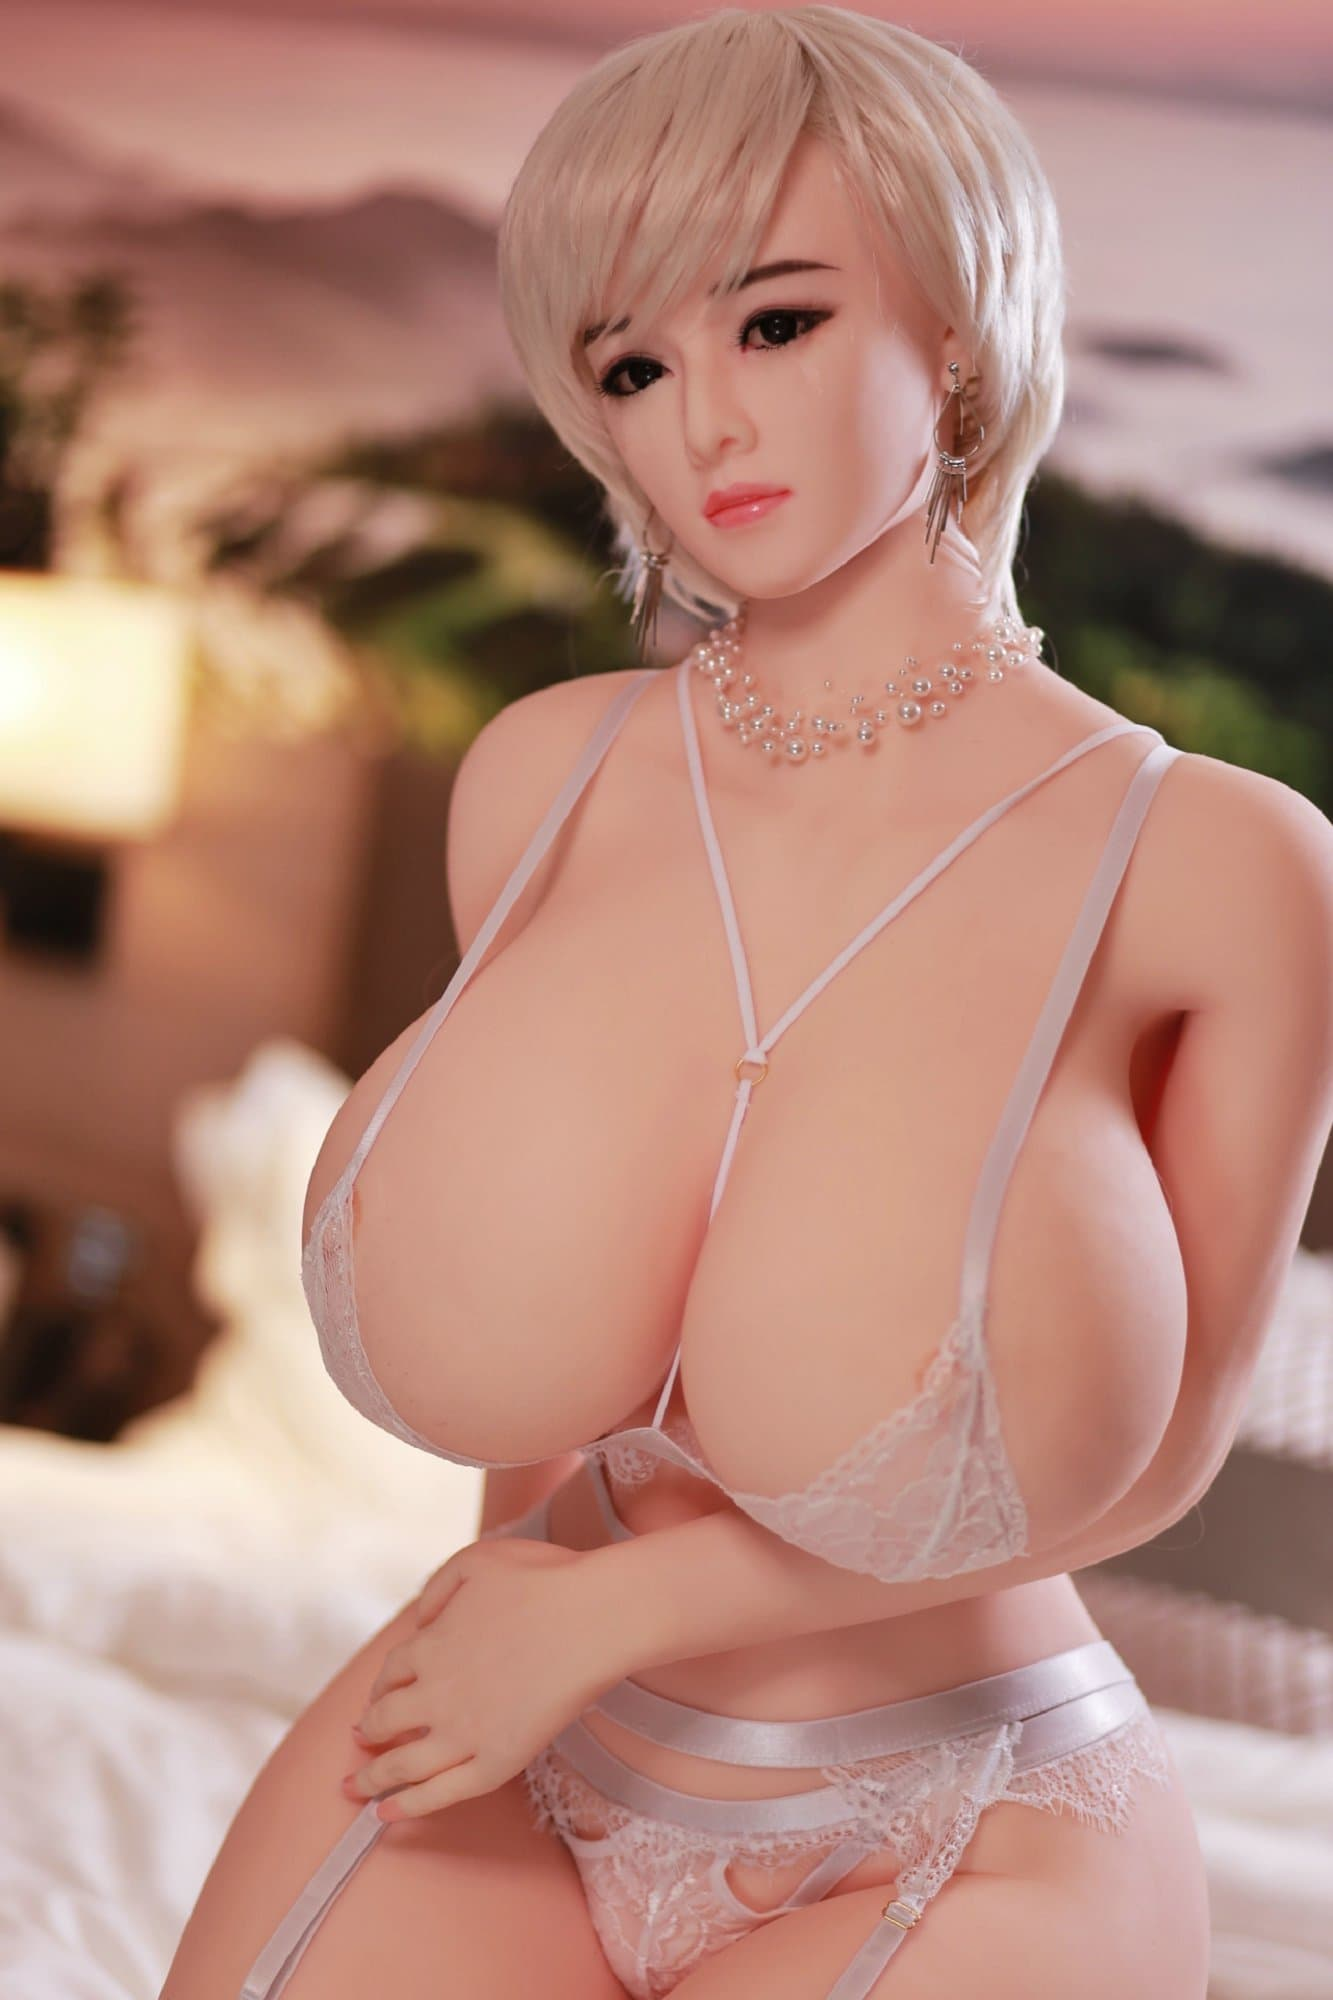 sela 159cm 5ft3 blonde curvy giant massive tits jy tpe sex doll(3)